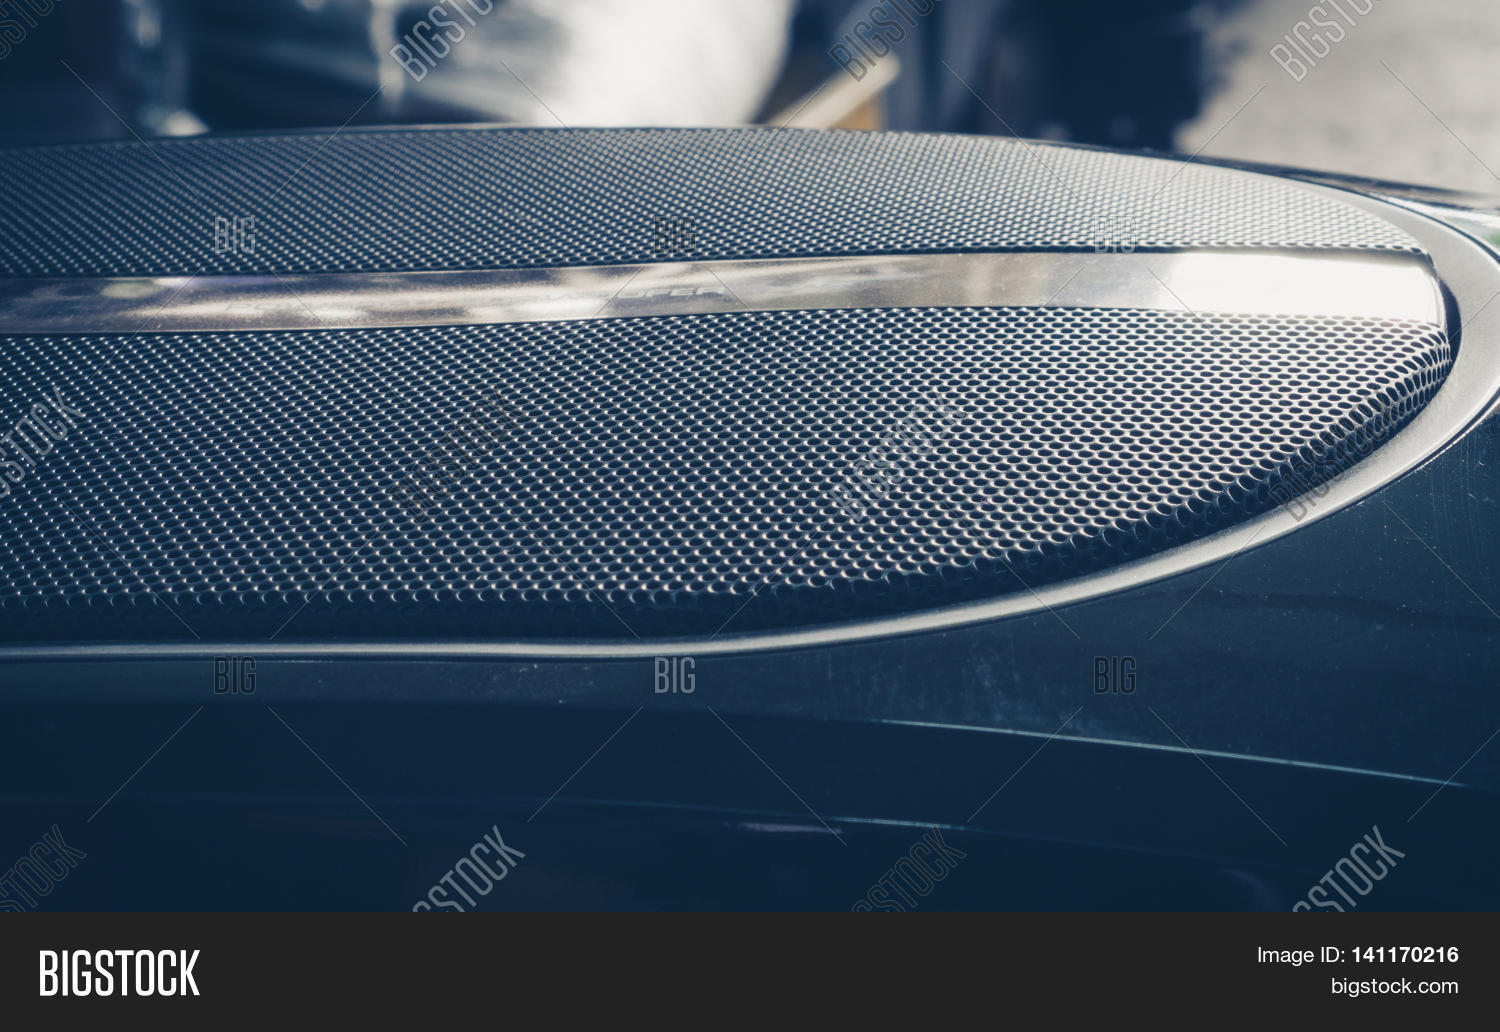 Part Black Old Car Image Photo Free Trial Bigstock Audio Of Subwoofer Vintage Filtered Effect